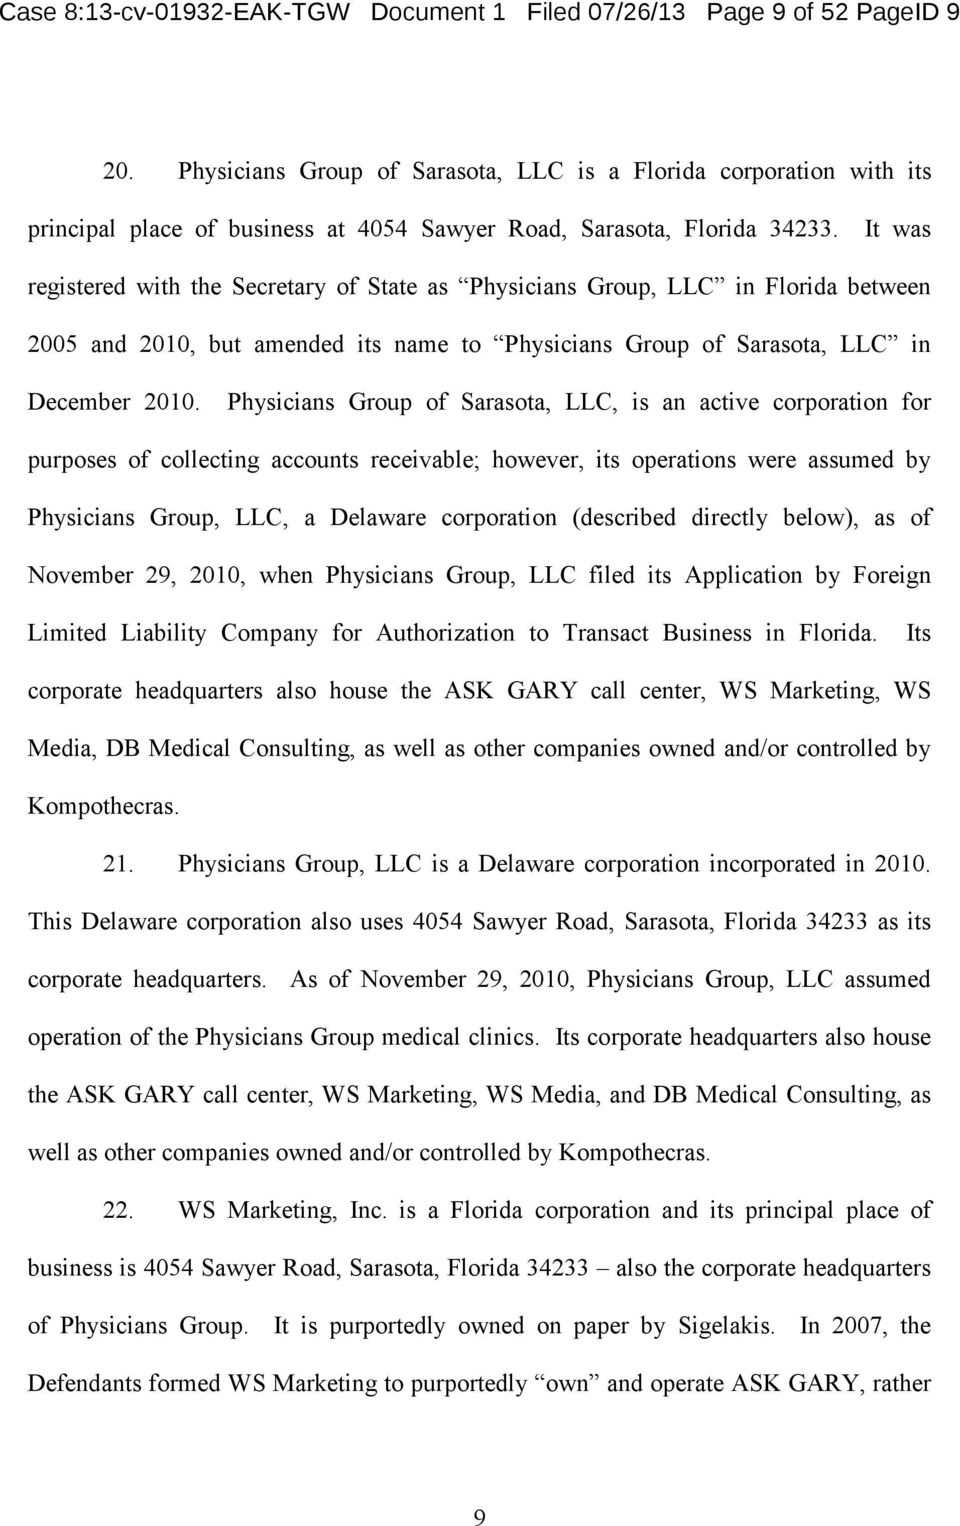 It was registered with the Secretary of State as Physicians Group, LLC in Florida between 2005 and 2010, but amended its name to Physicians Group of Sarasota, LLC in December 2010.